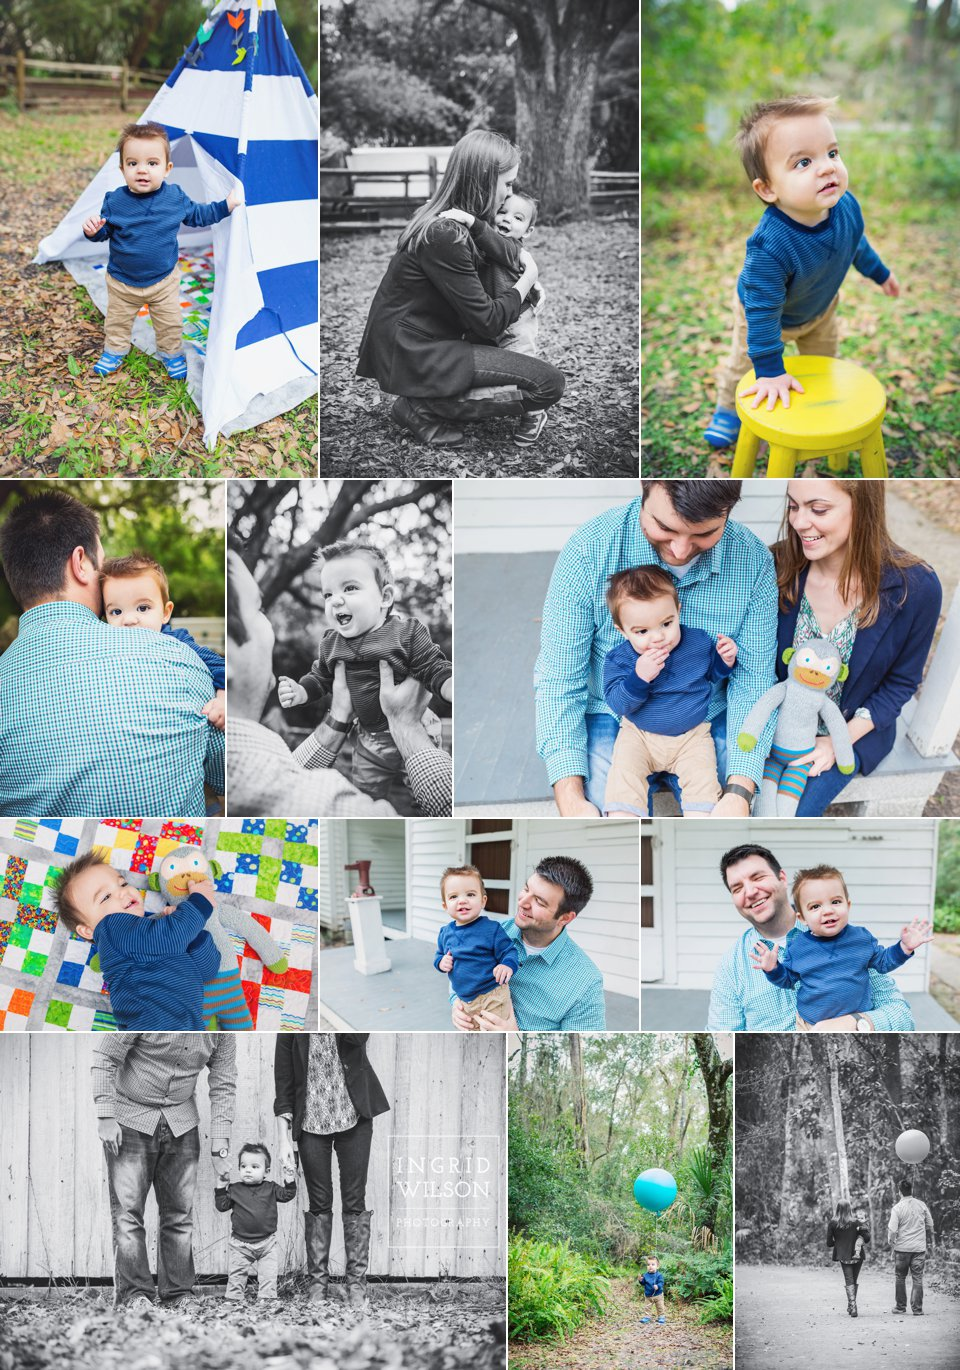 FAMILY-PHOTOGRAPHY_FIRST-BIRTHDAY_JACKSONVILLE-FL © INGRIDWILSONPHOTOGRAPHY